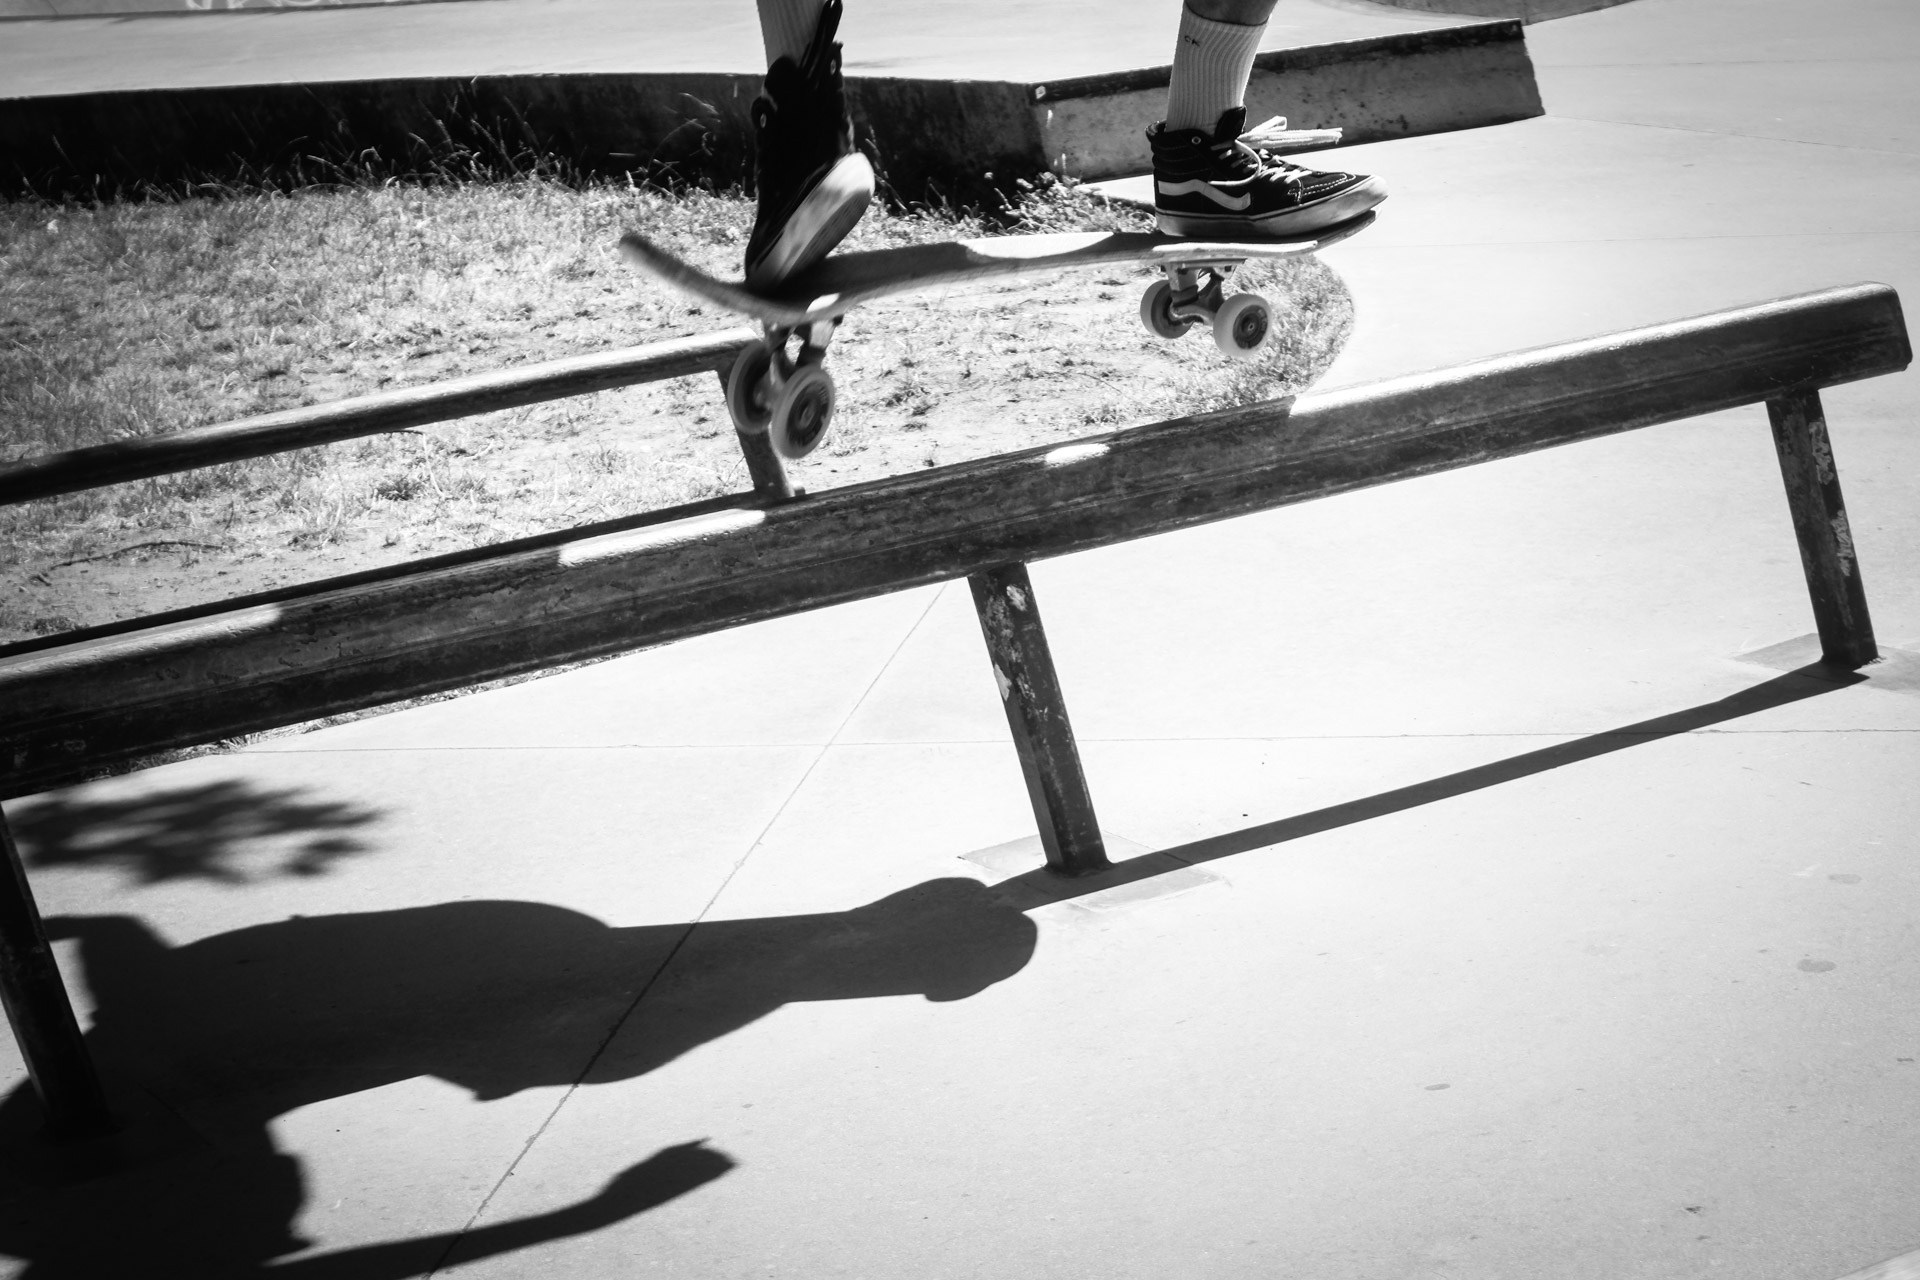 Photo of a skateboarder on a rial